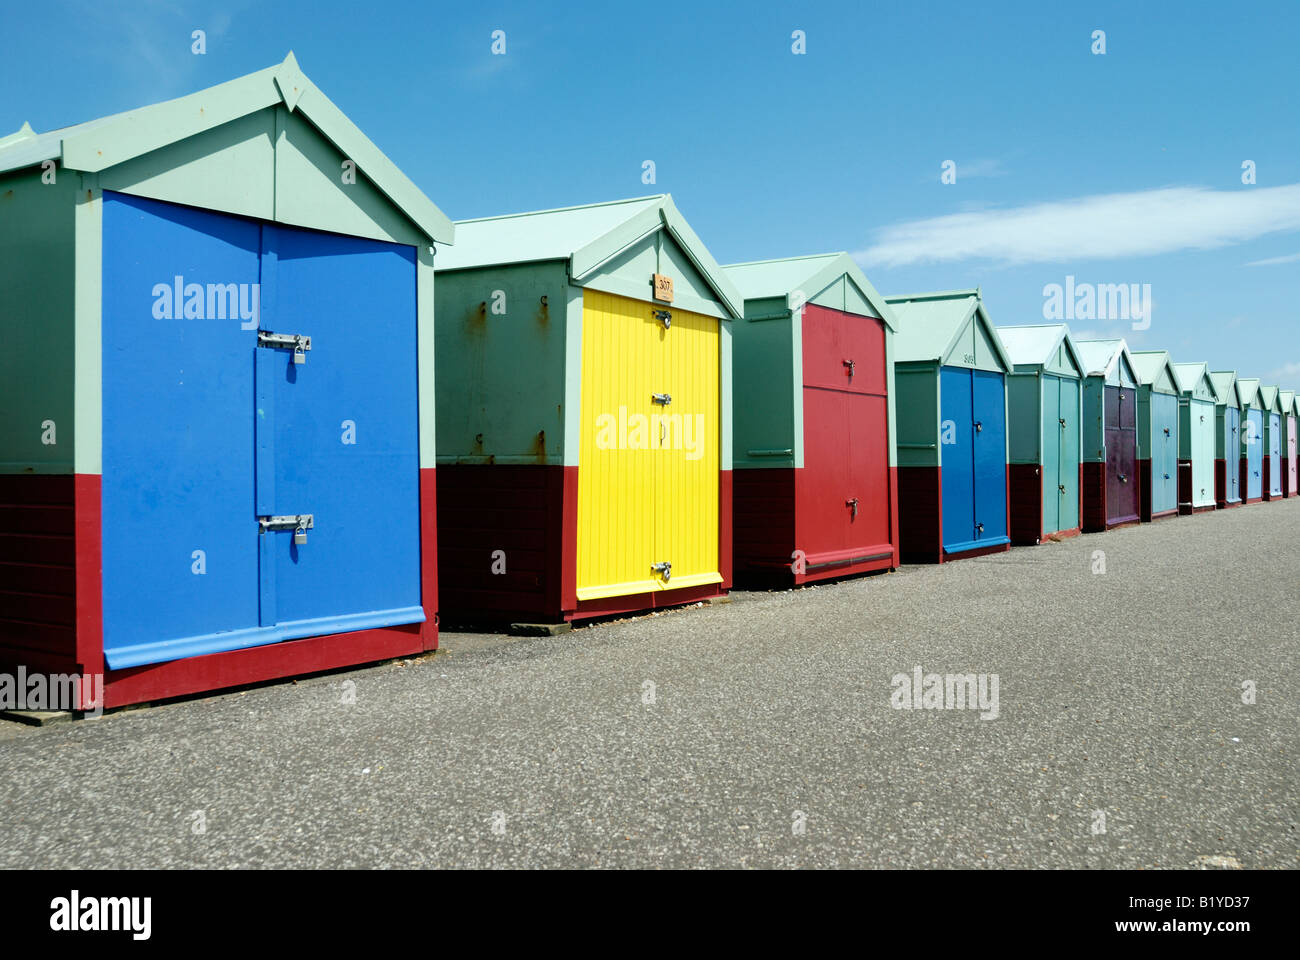 A row of colourful beachhuts on the seafront in Hove - Stock Image